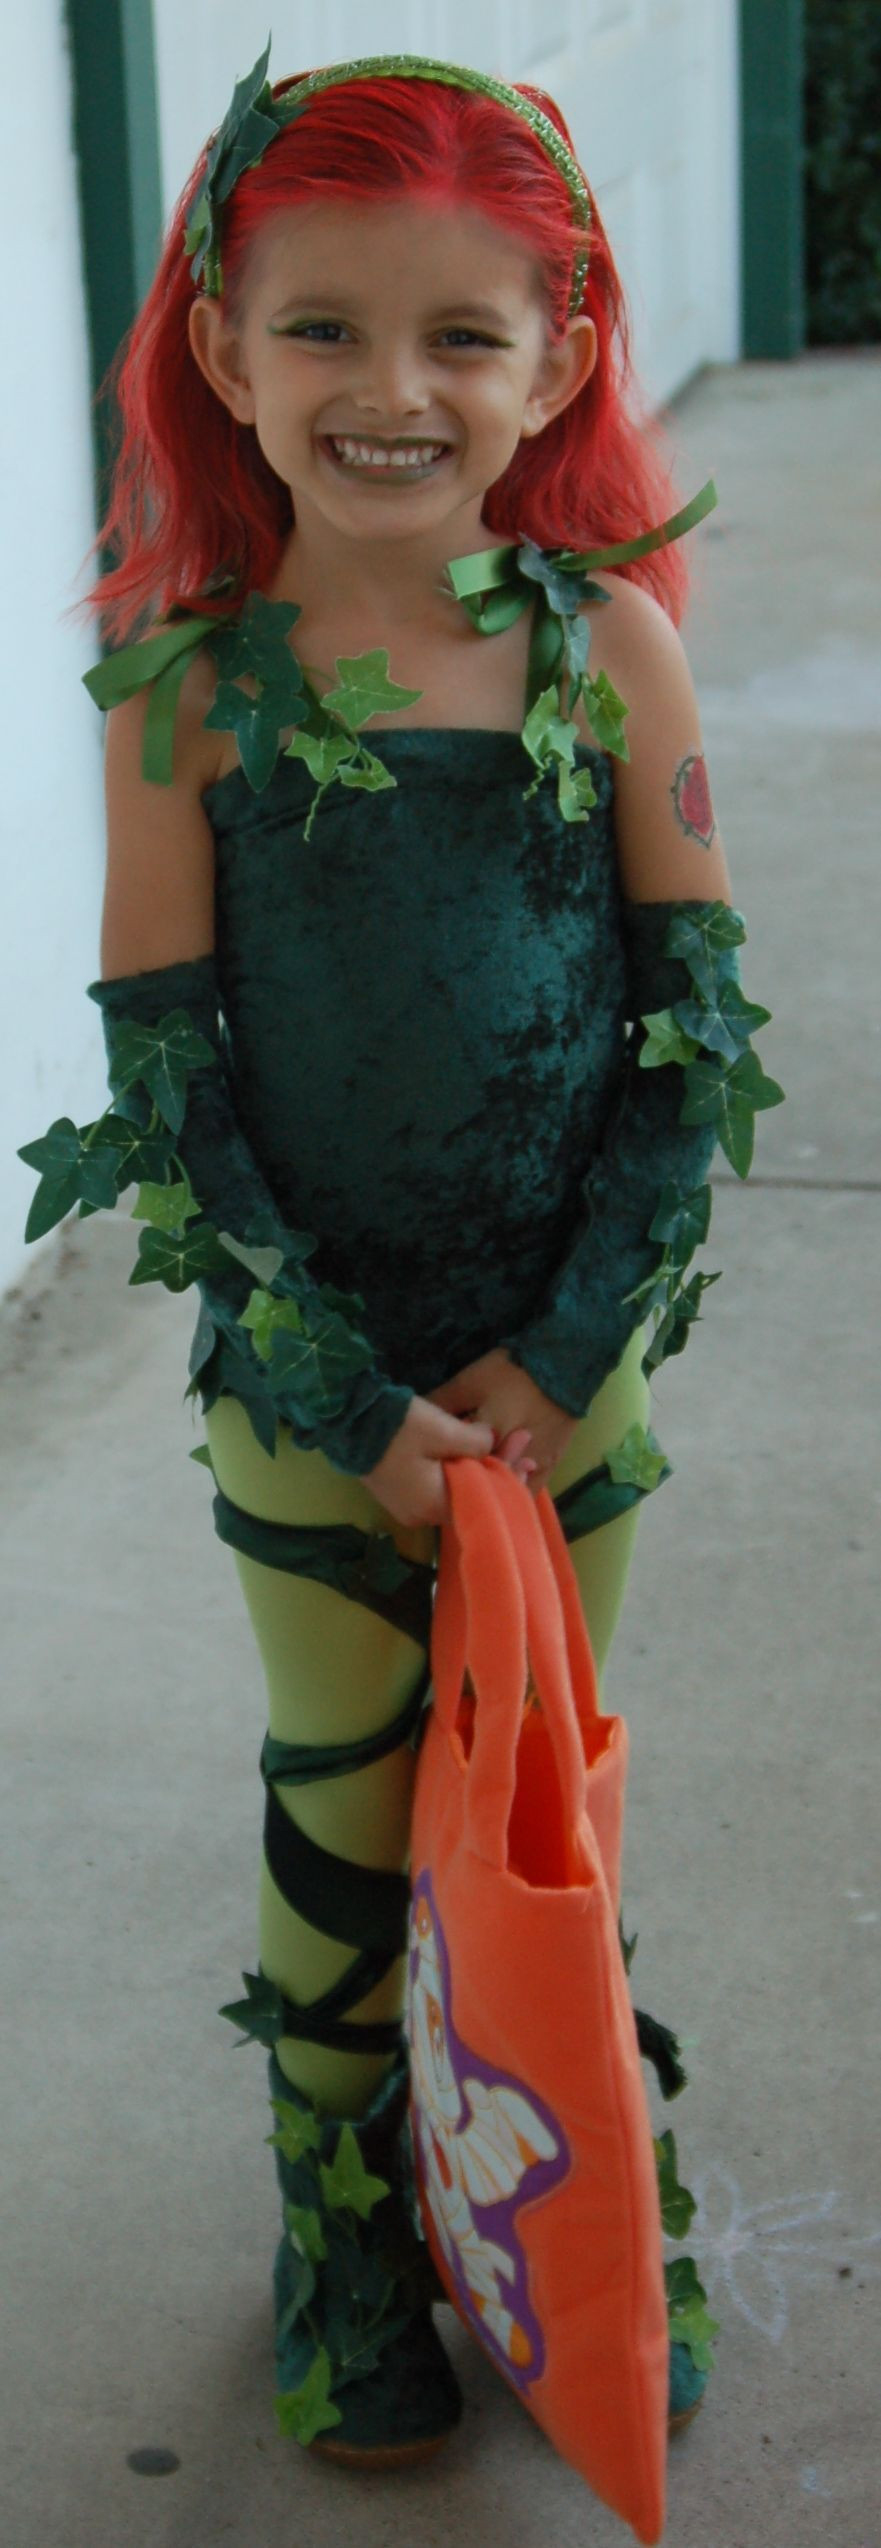 Best ideas about DIY Poison Ivy Costume . Save or Pin DIY Poison Ivy Costume holiday special Now.